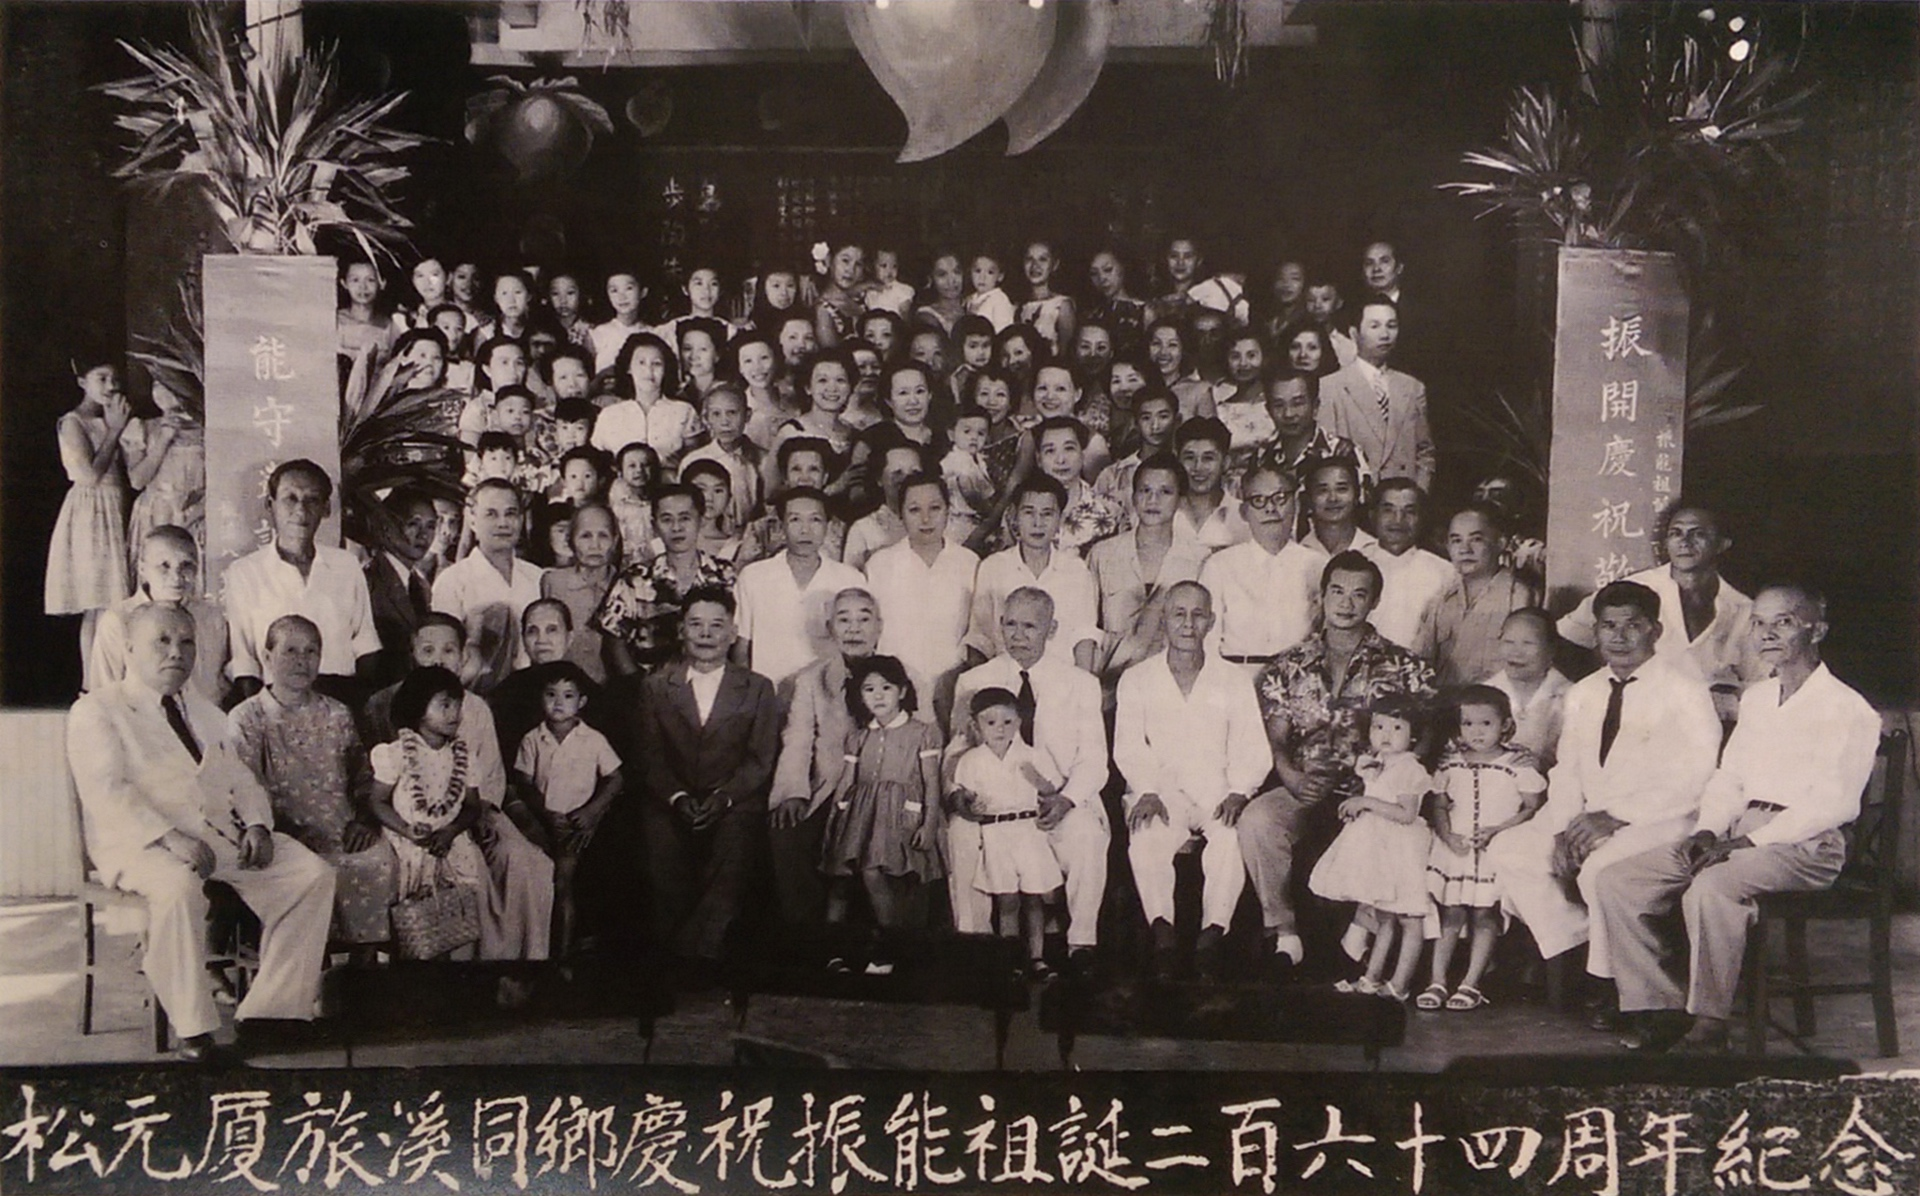 Generations of Chinese Chen posing for a black and white vintage family photo